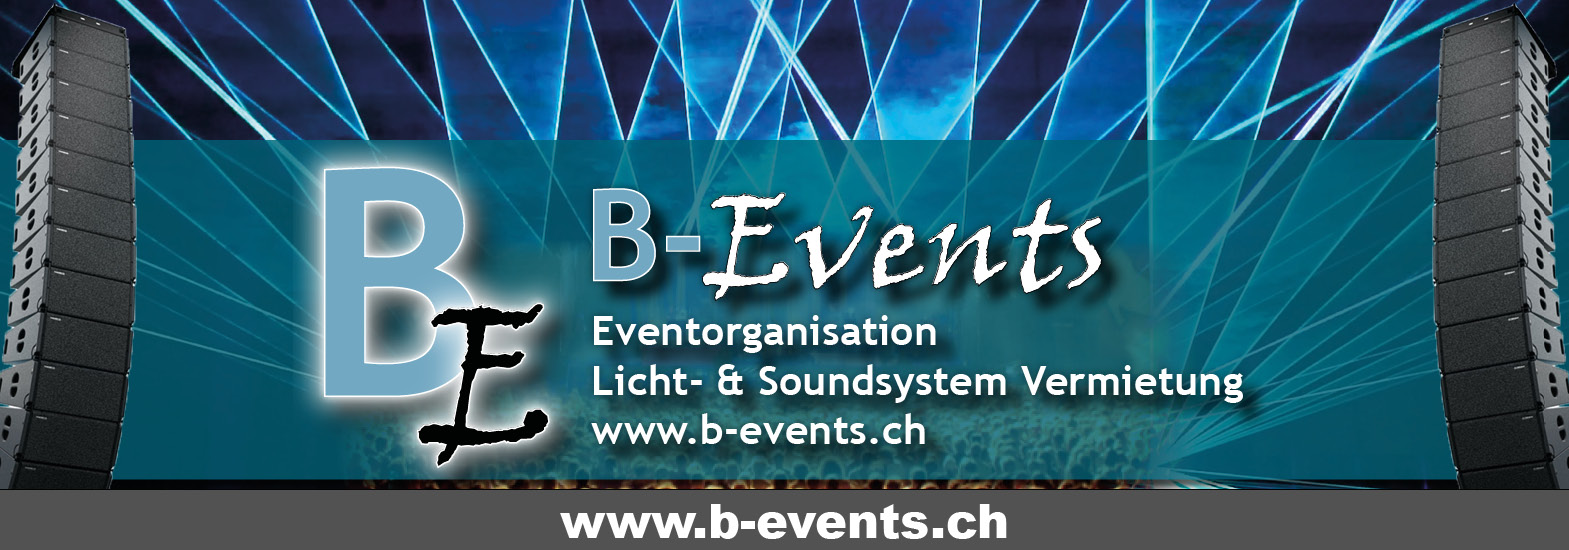 B-Events